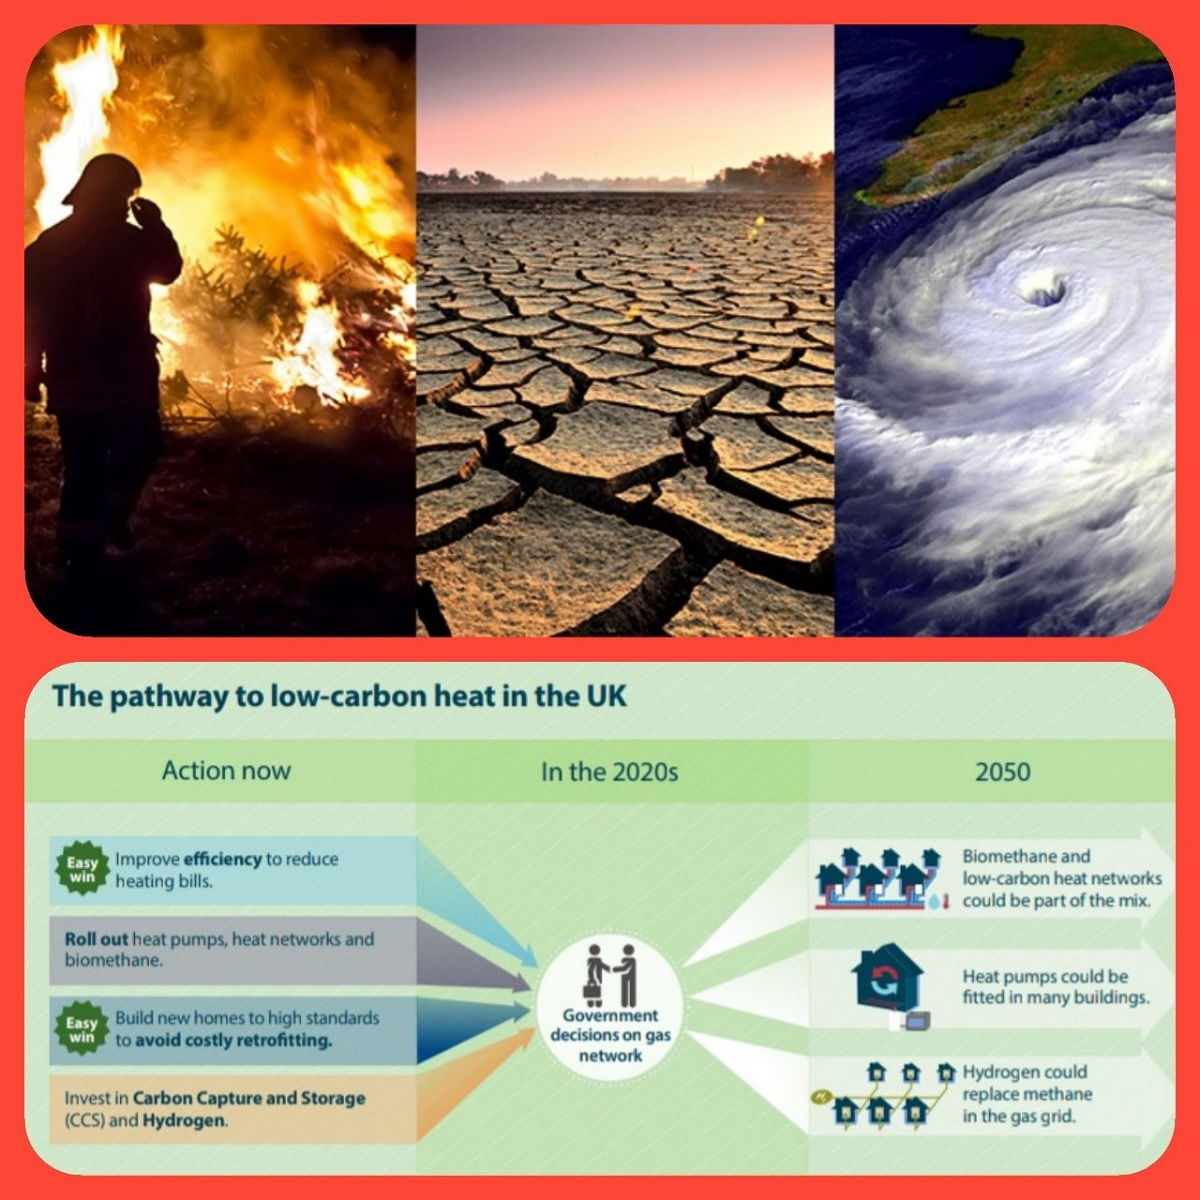 Climate Emergency: What's your contribution?